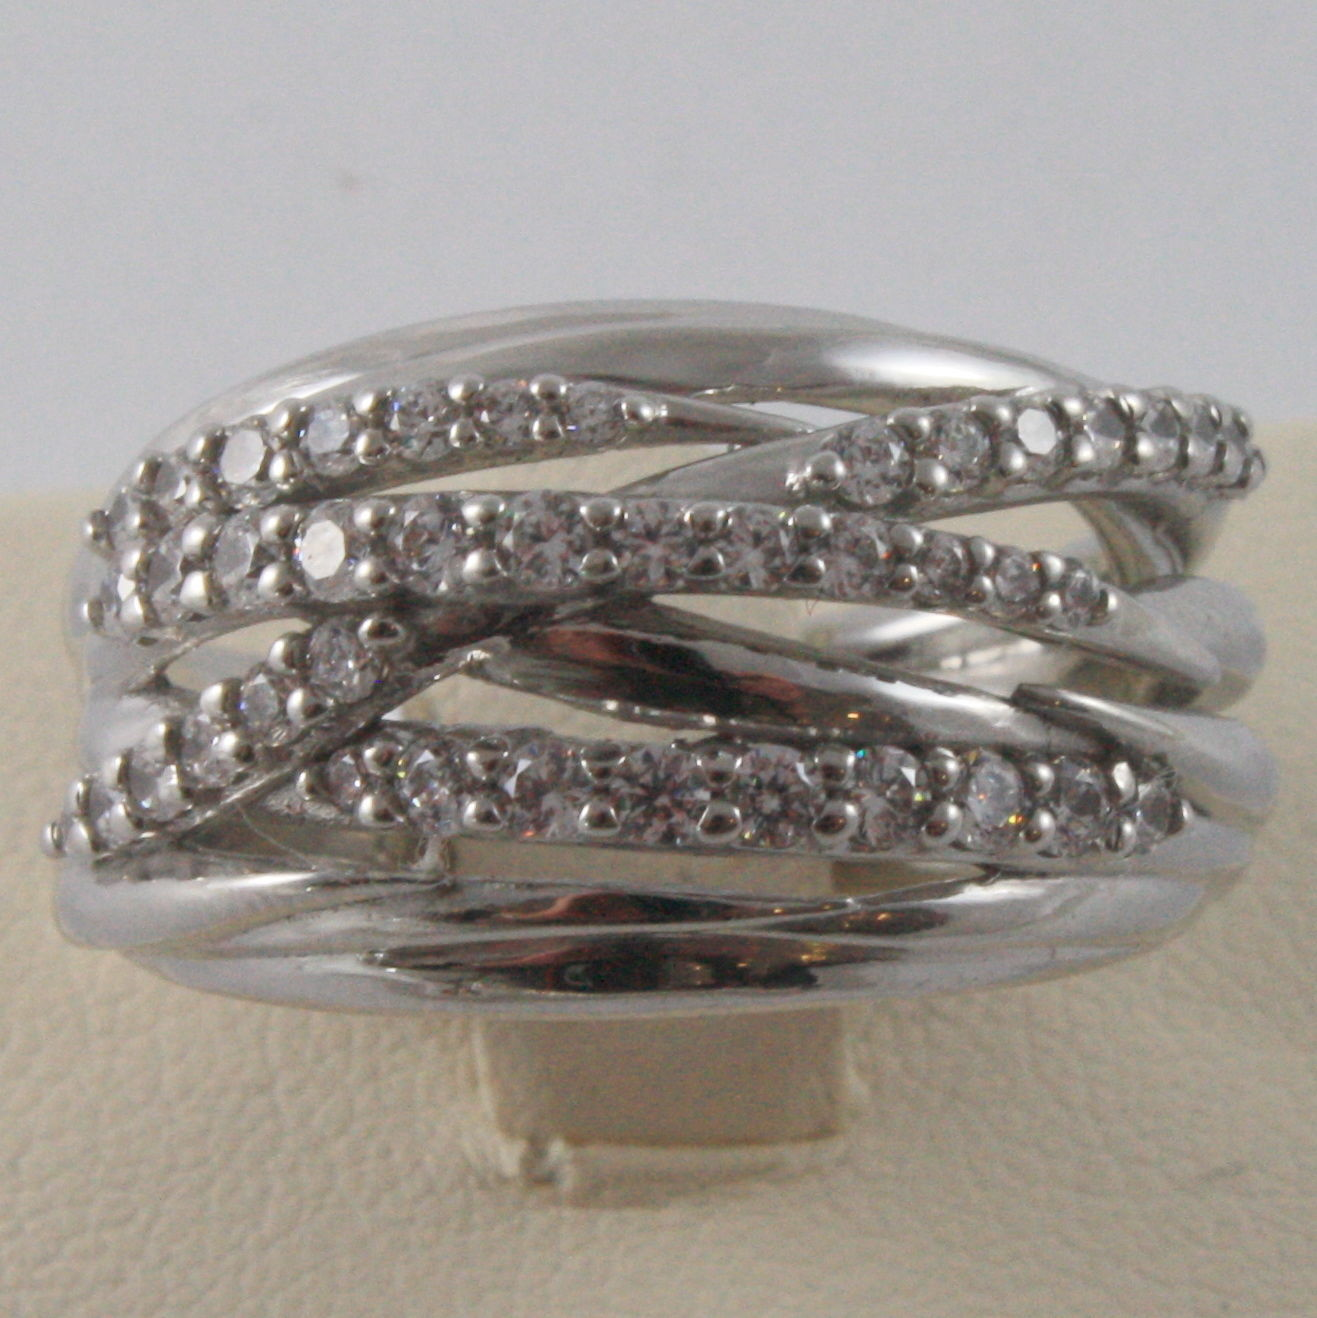 SOLID 925 SILVER BAND RING BY NANIS, MULTIWIRES, WOVEN, ZIRCONIA, MADE IN ITALY